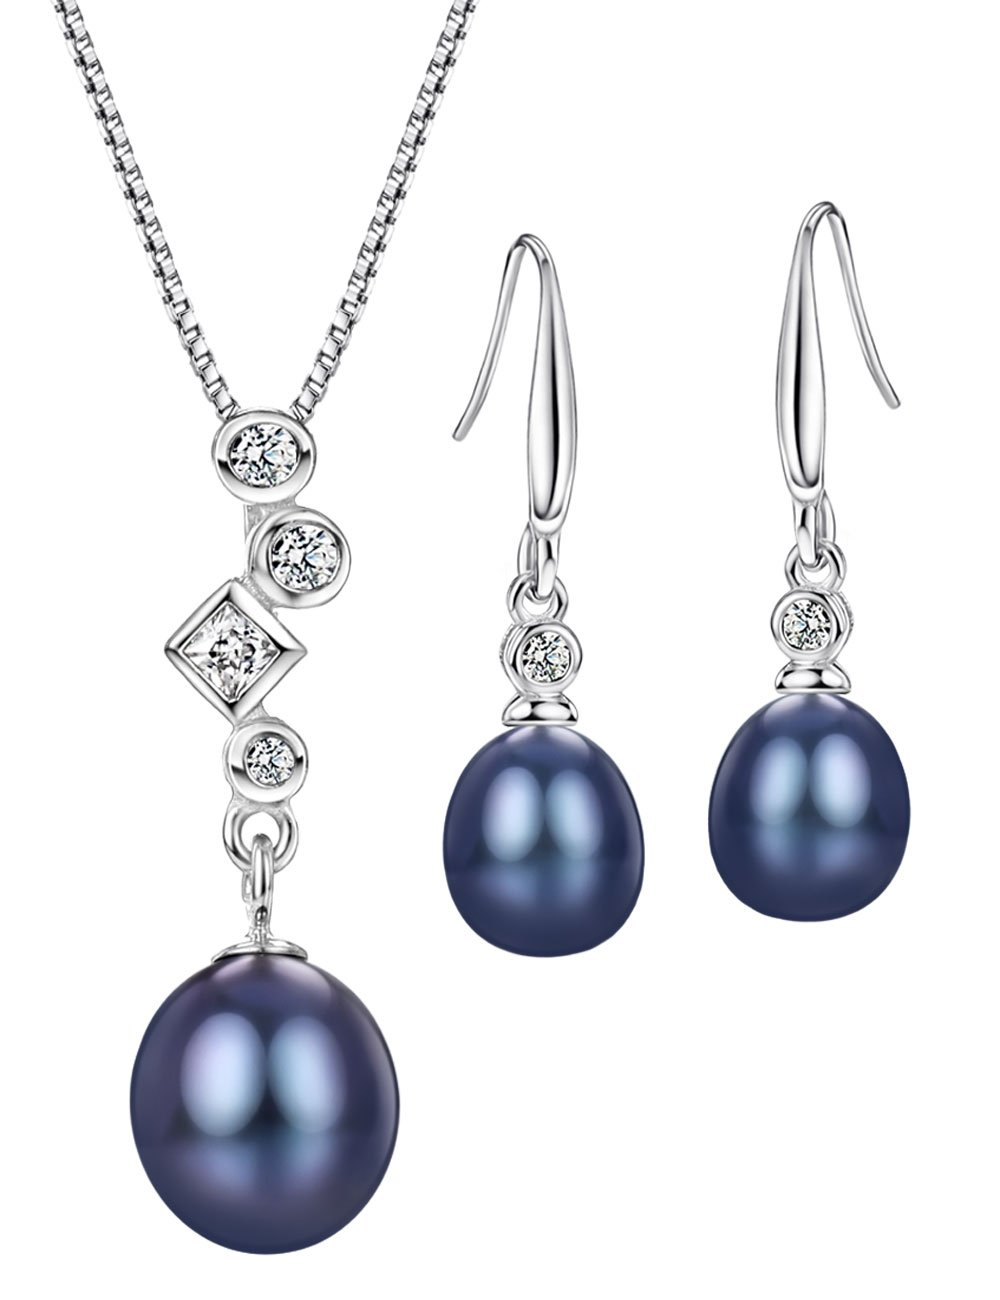 Mints Black Freshwater Pearl Jewelry Set Sterling Silver Necklace and Earrings Set Fine Jewelry for Women